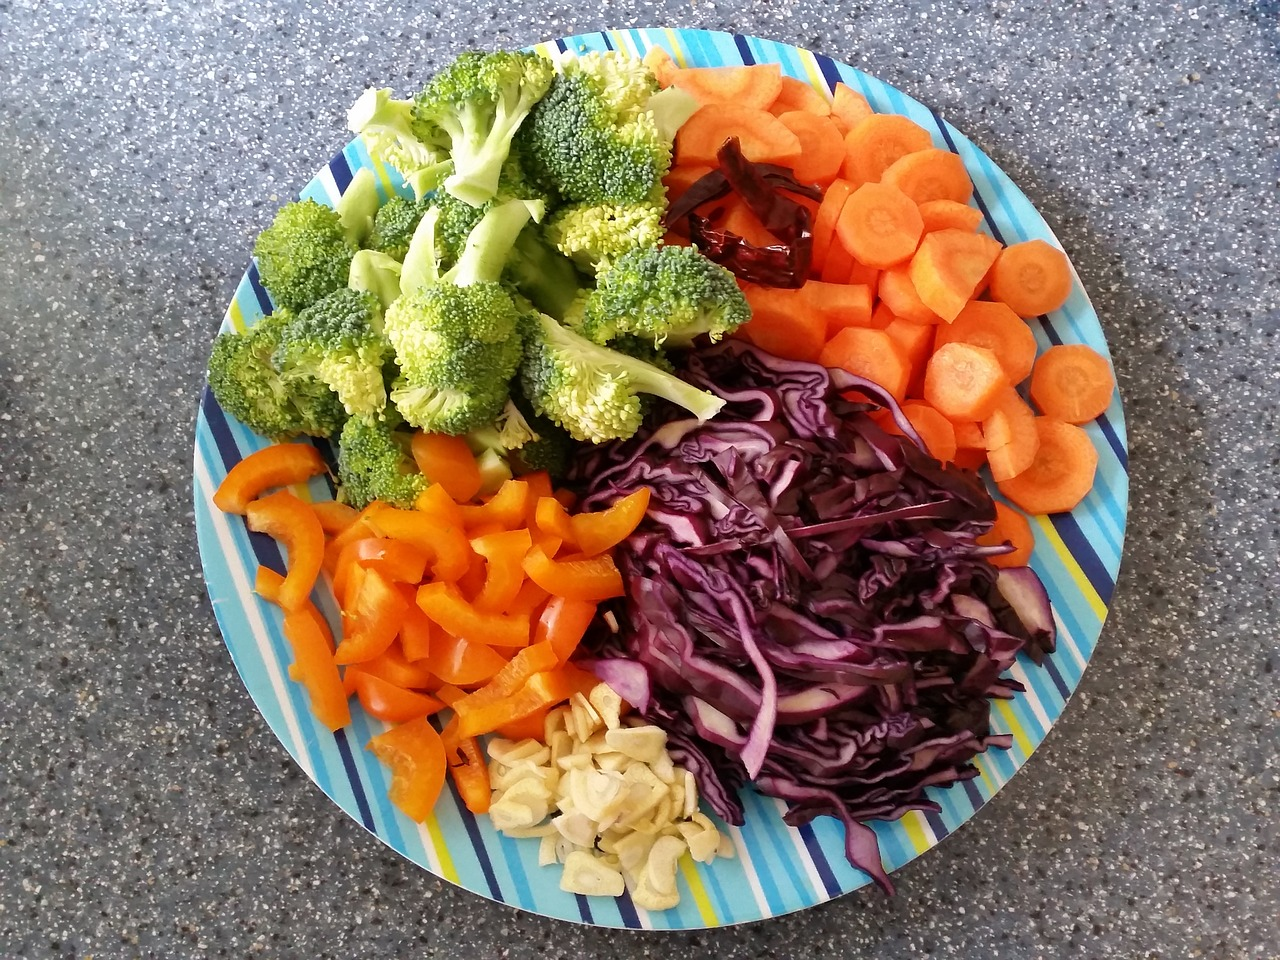 vegetables fresh stir fry free photo